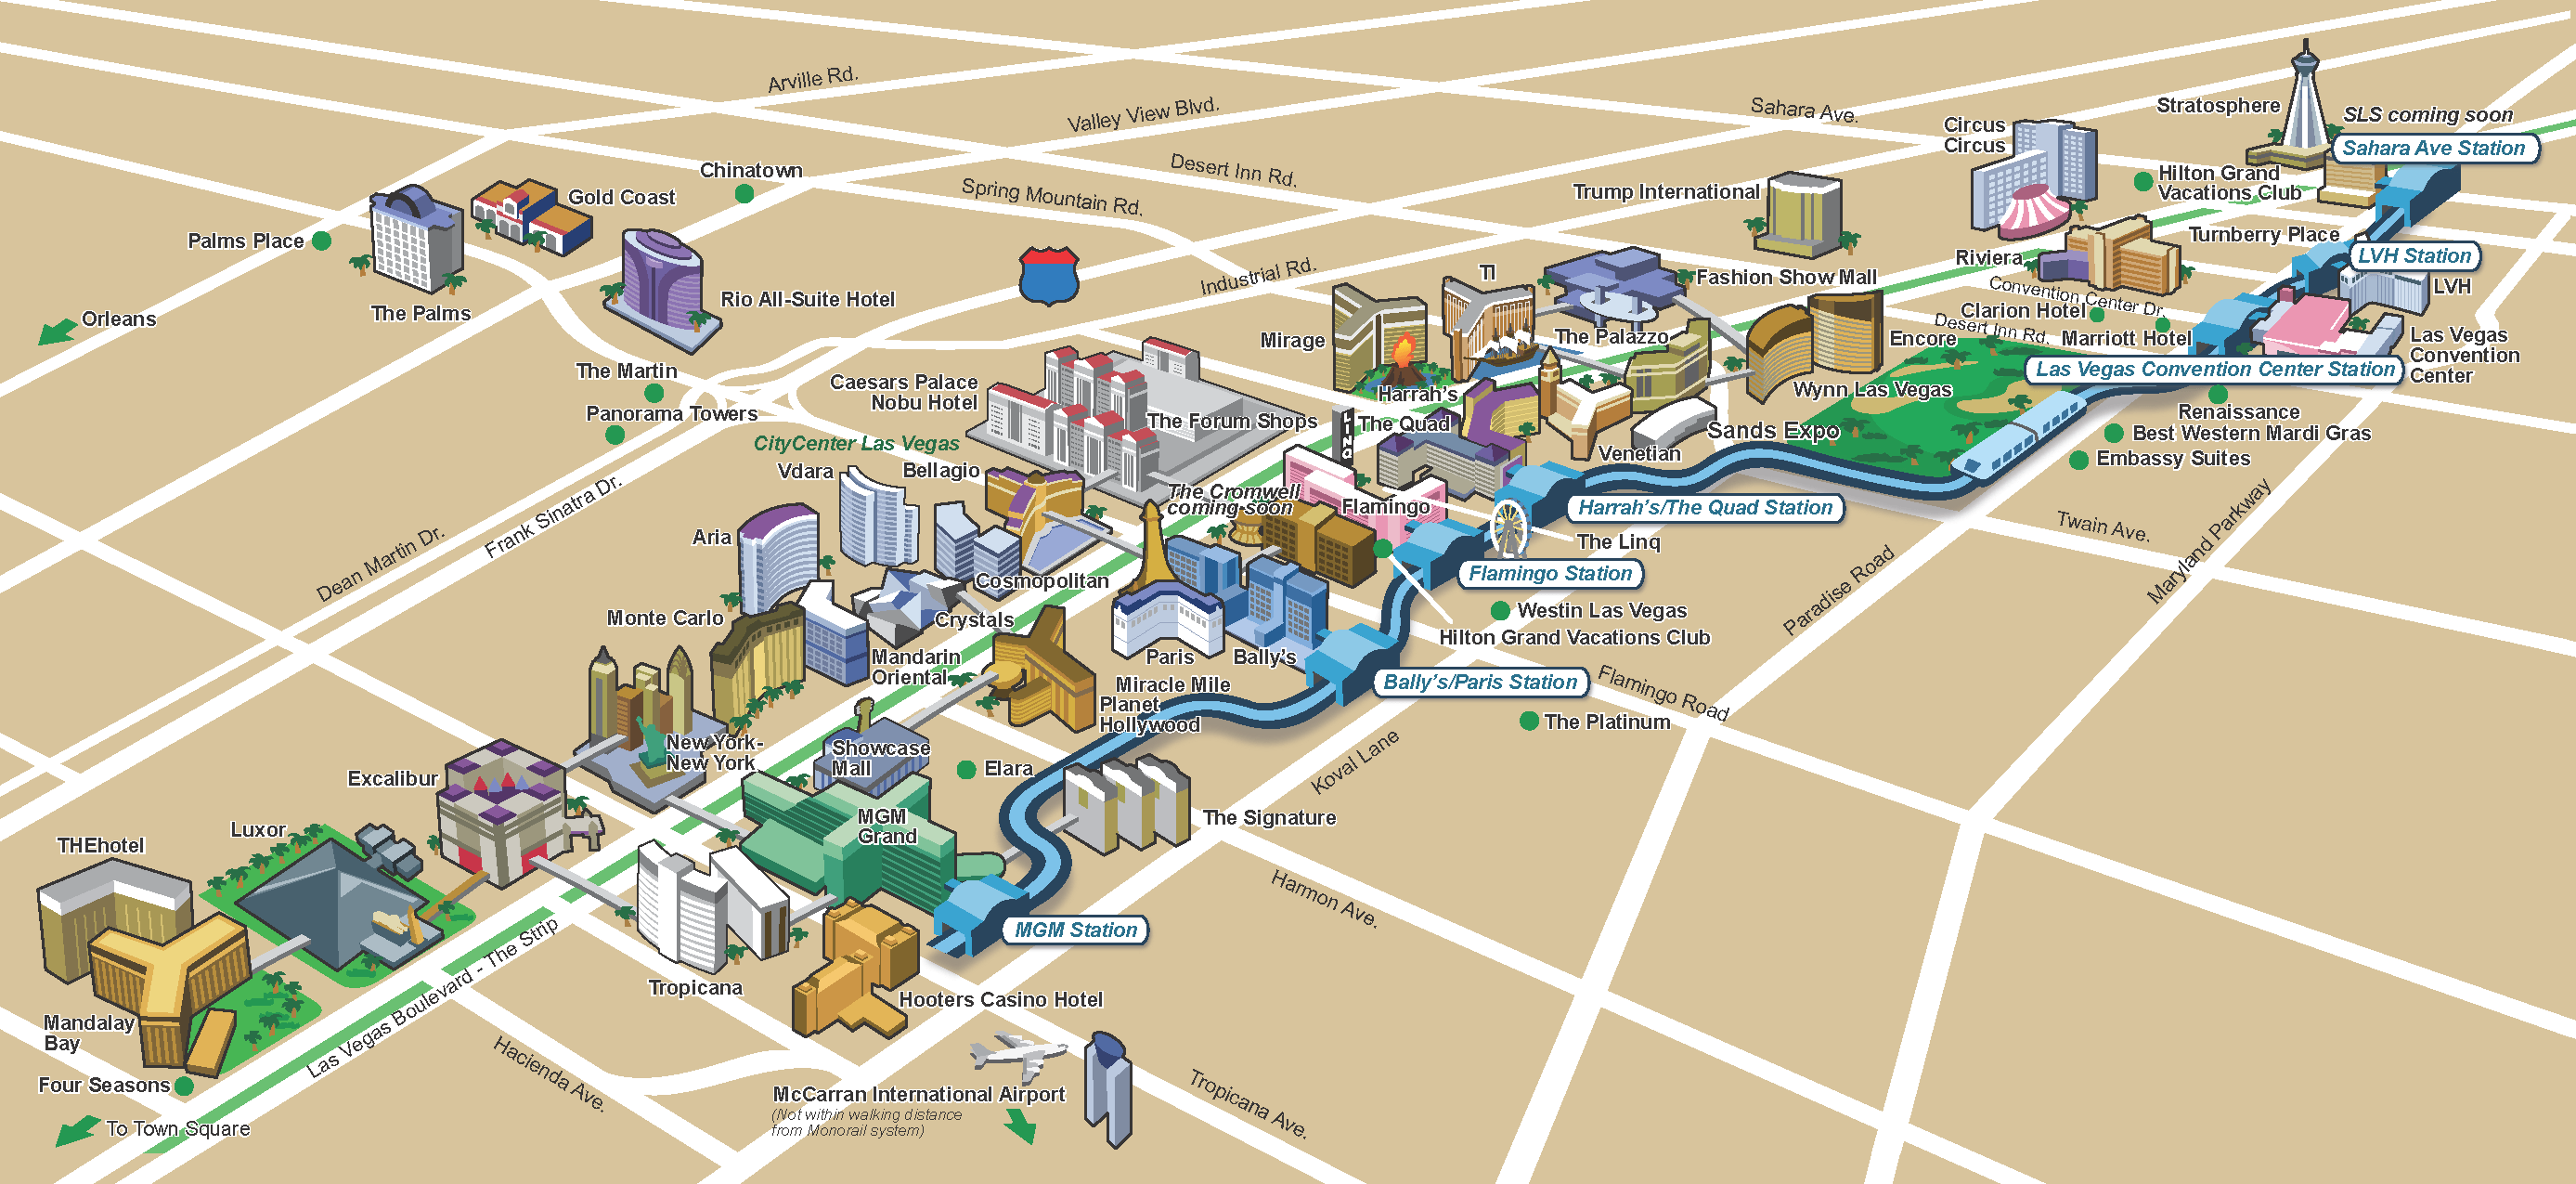 Monorail las vegas map